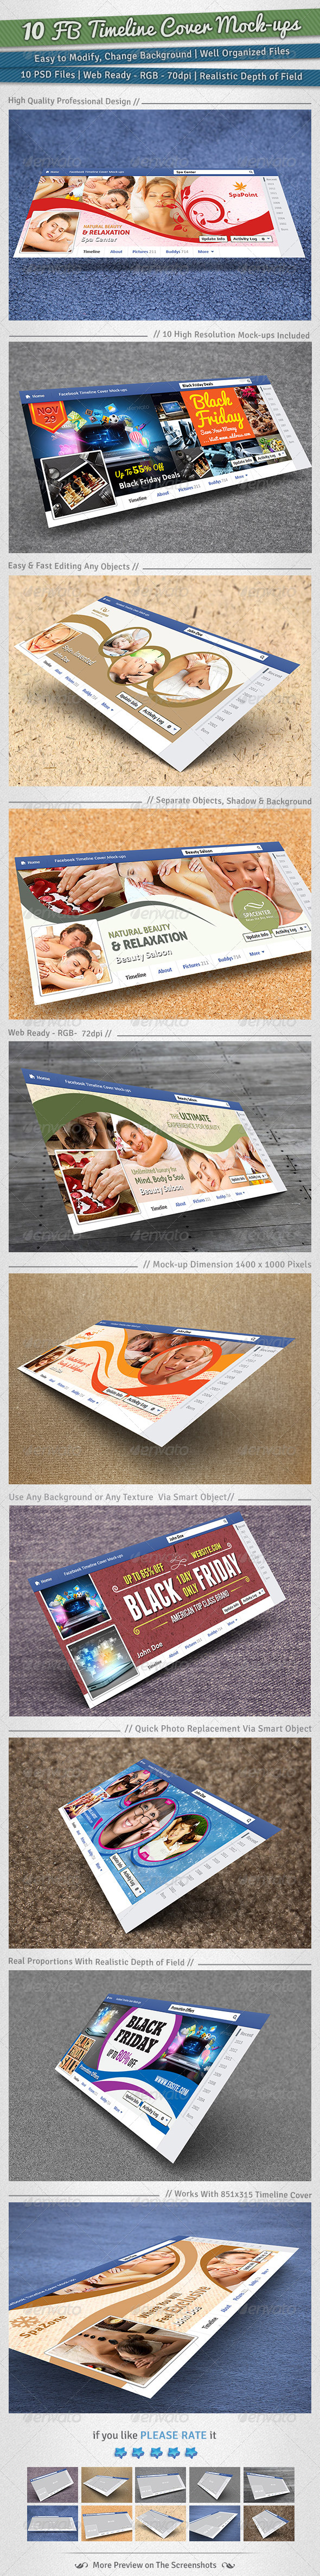 GraphicRiver 10 Facebook Timeline Cover Mock-ups 6455257